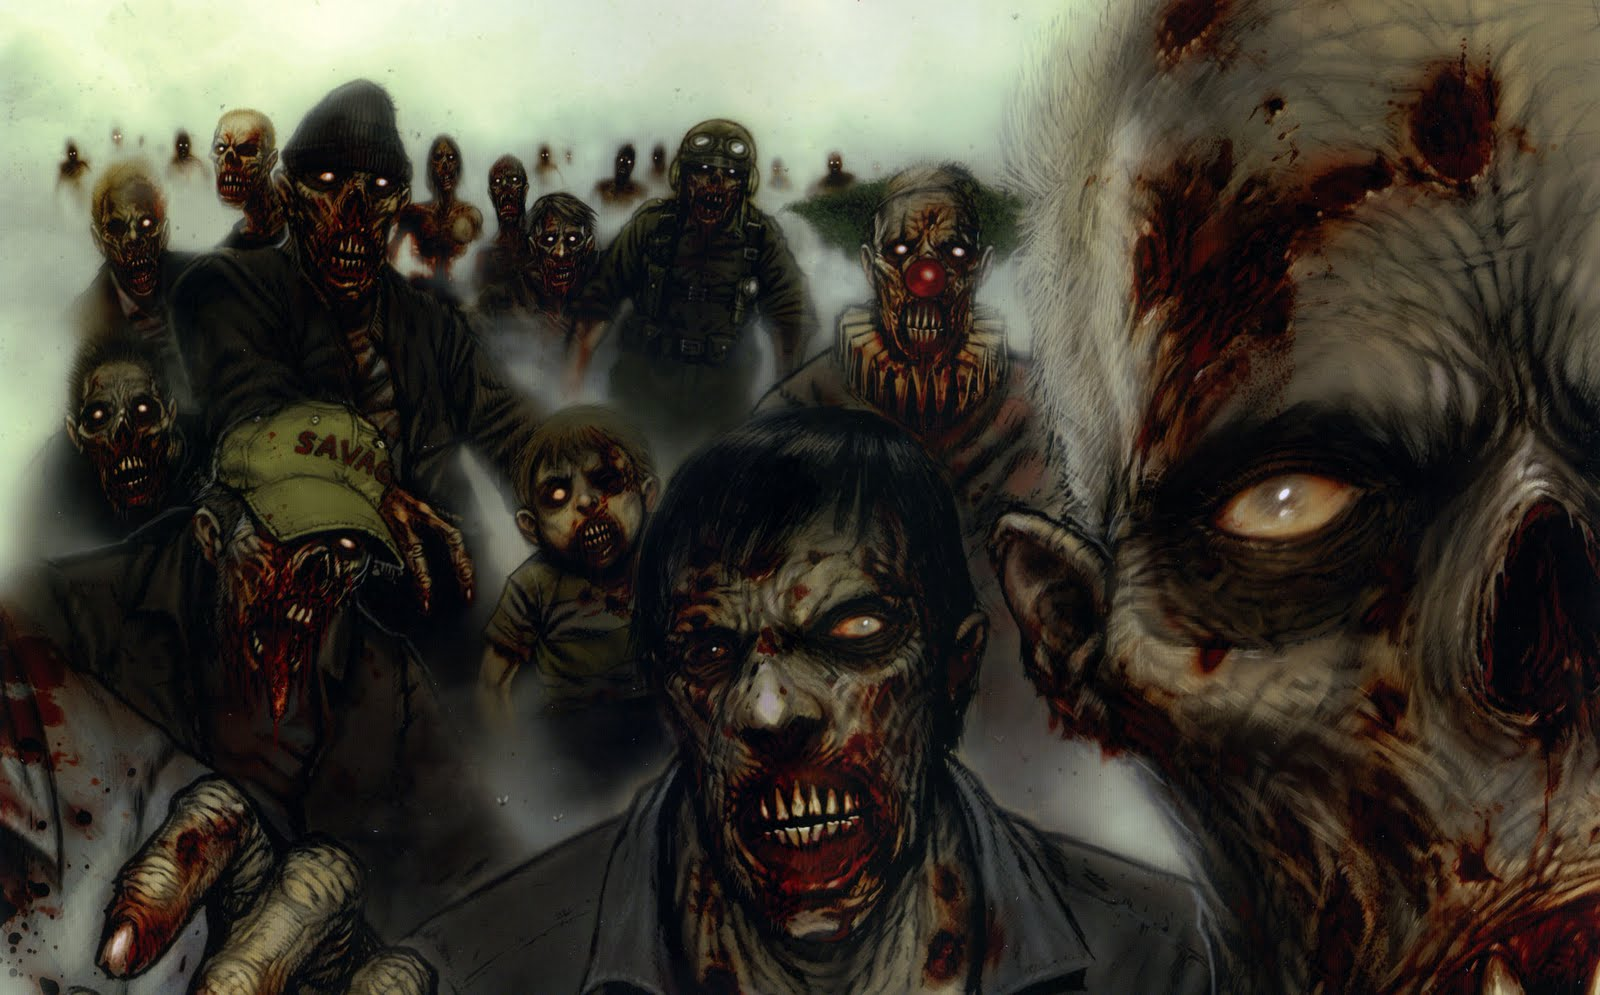 Zombie Survival Wallpaper Real Guide to Zombie Survival